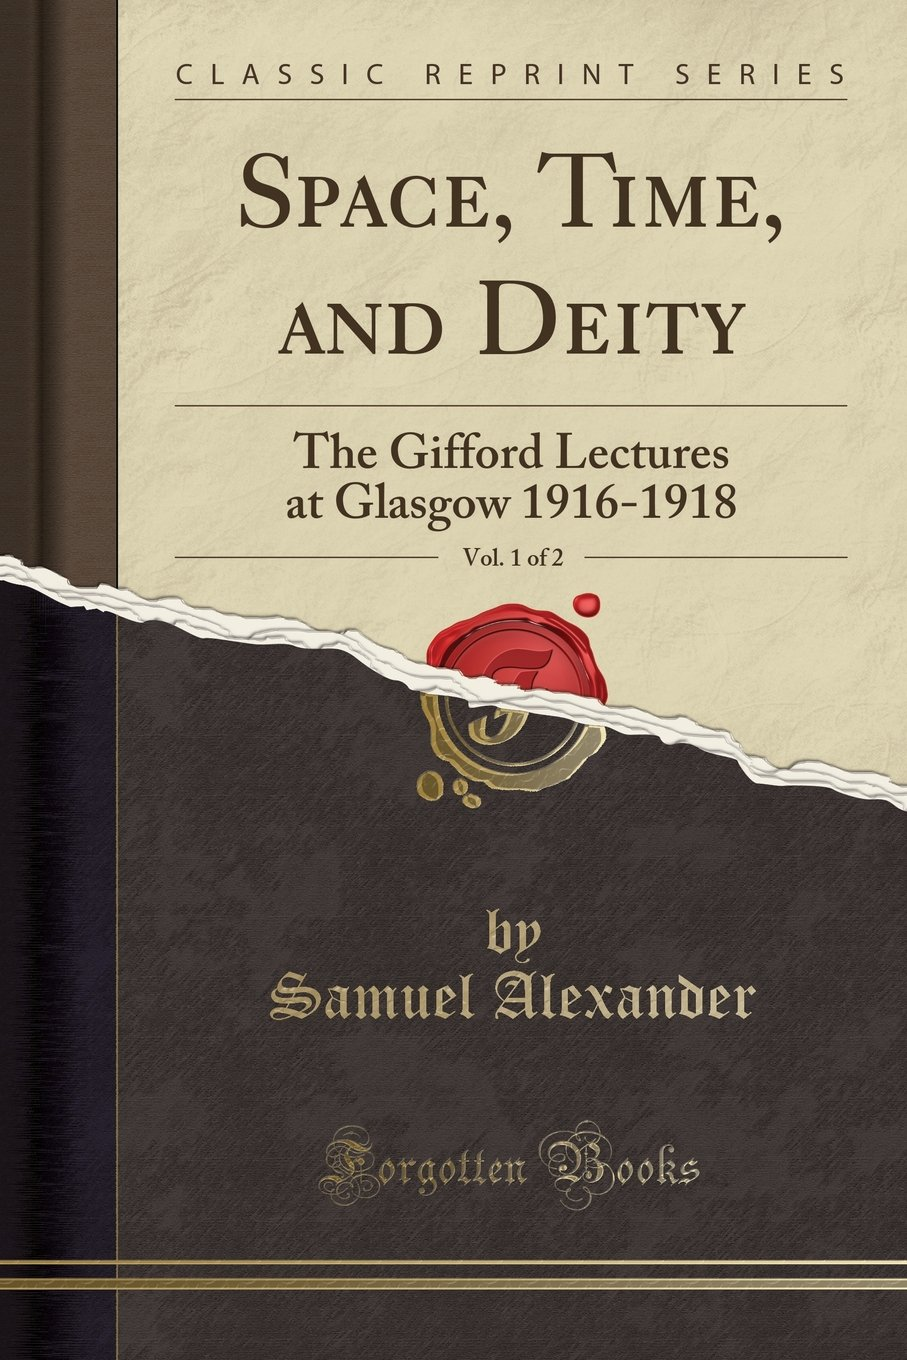 Download Space, Time, and Deity: The Gifford Lectures at Glasgow 1916-1918, Vol. 1 of 2 (Classic Reprint) pdf